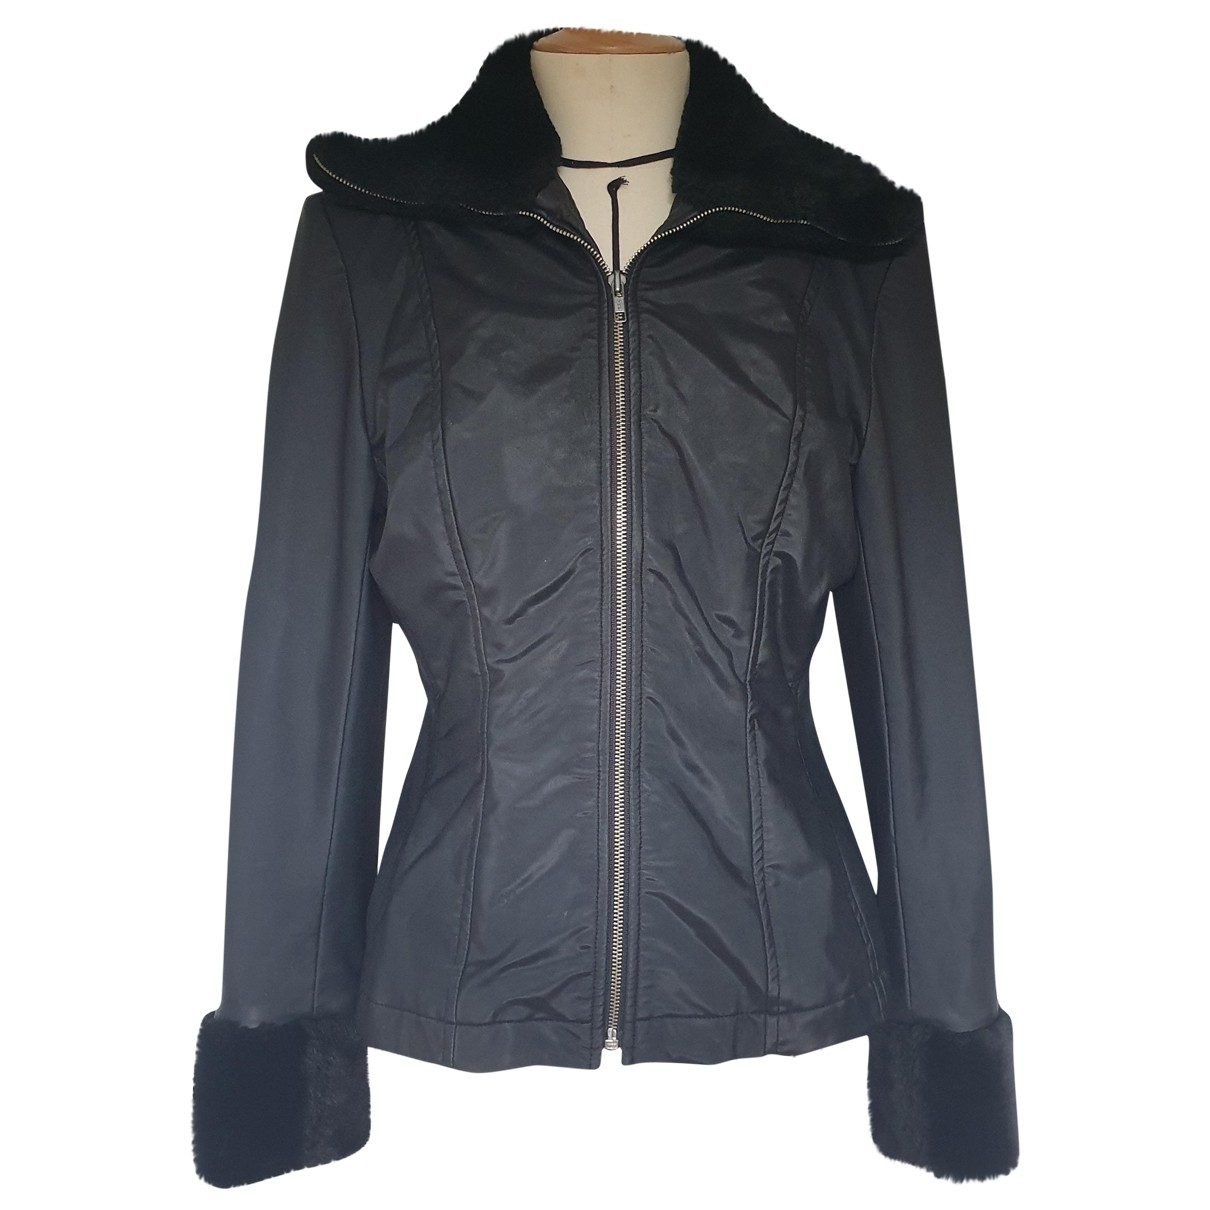 Yves Saint Laurent \N Black jacket for Women 40 FR